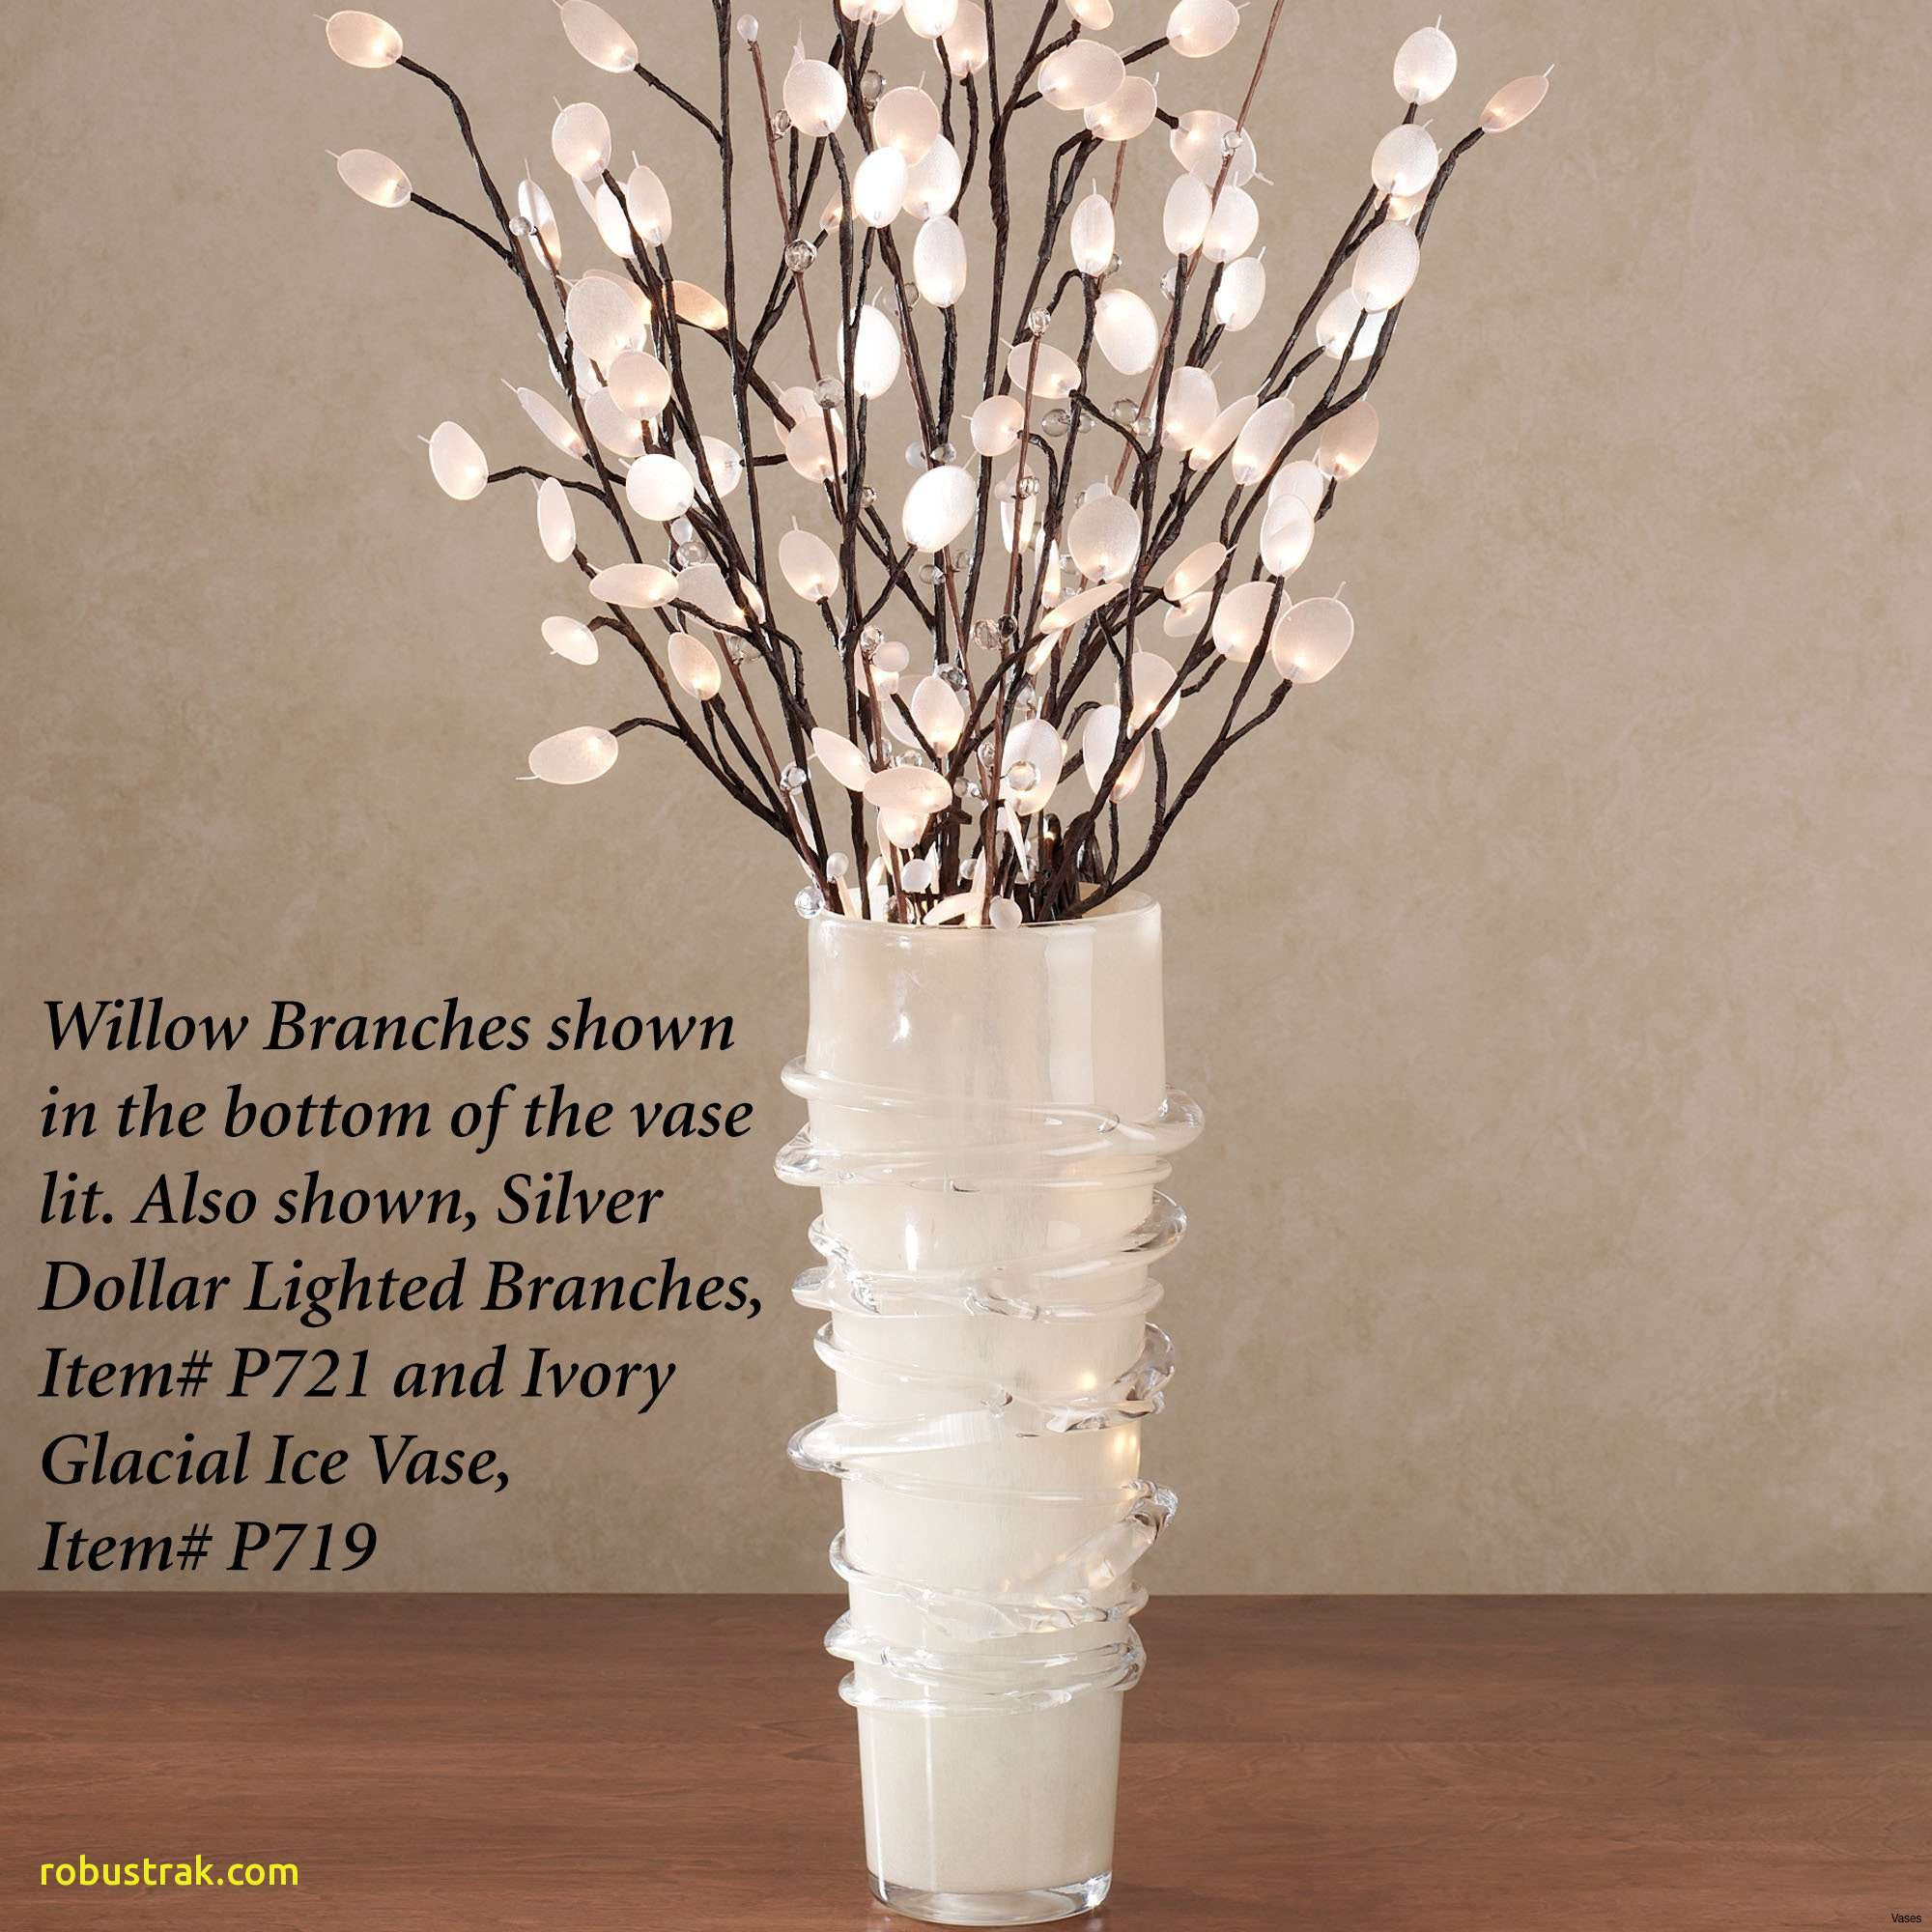 Tall Floor Vase Decoration Ideas Of Elegant Decorating with Vases Home Design Ideas Inside Floor Decor Vase Tall Ideash Vases Decorating with and Twigs Fill A Substantial Arrangement Led Branches